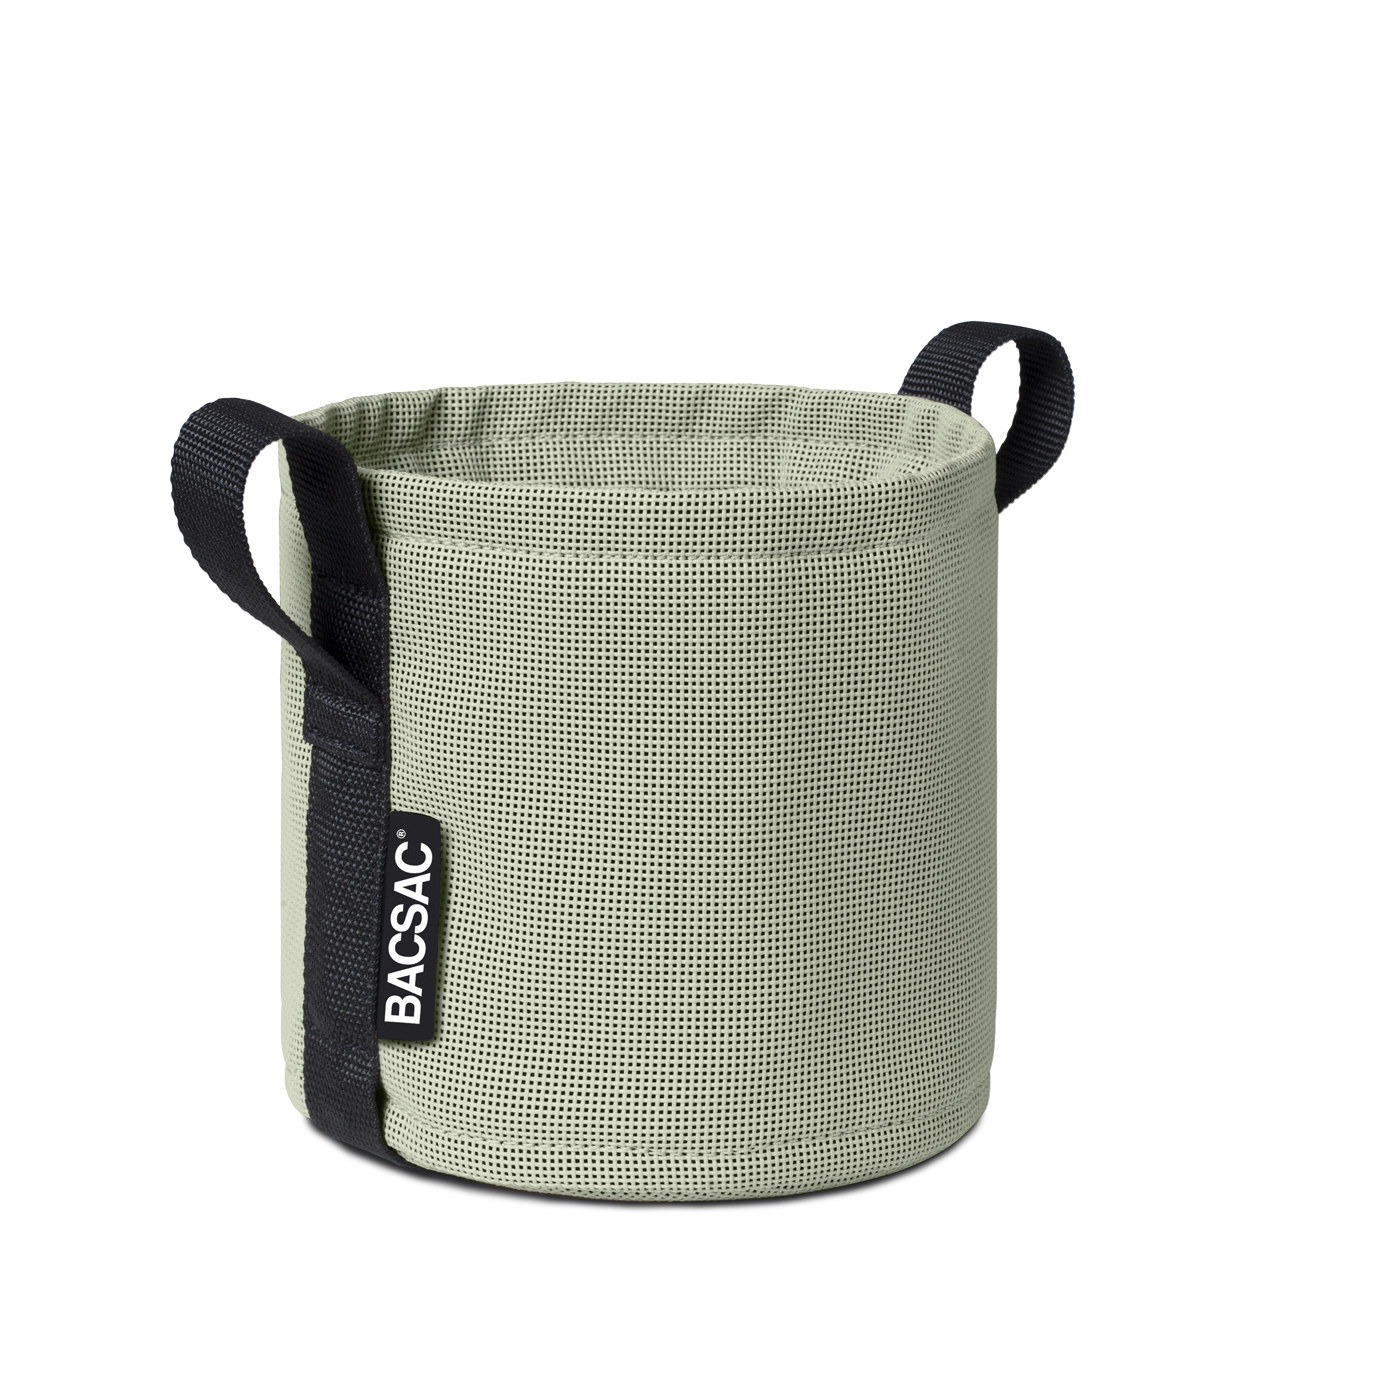 Bacsquare 16 kitchen garden (570L) Taupe